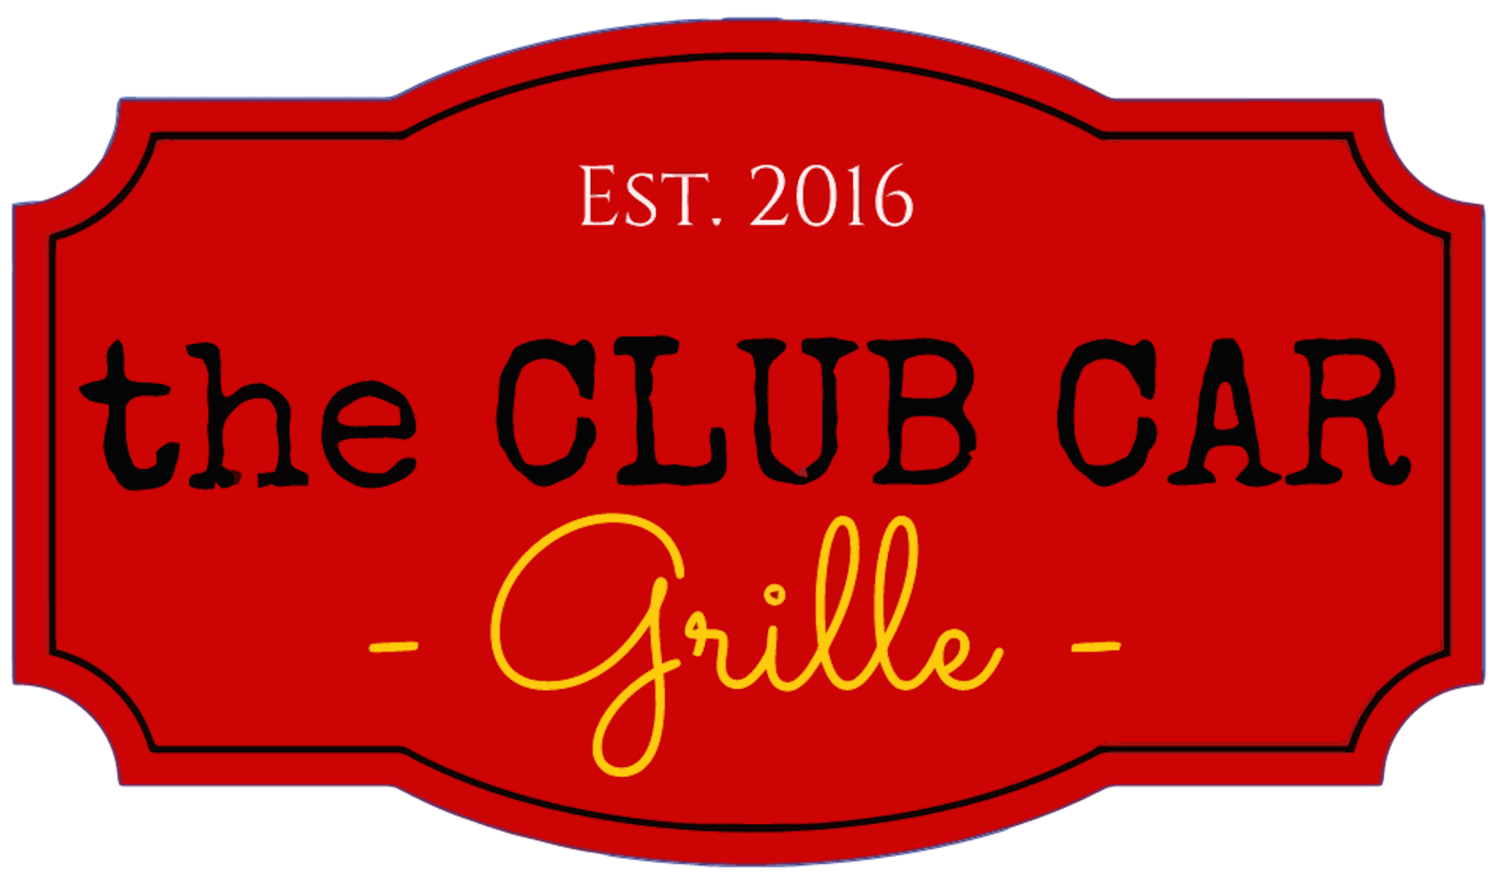 the Club Car Grille